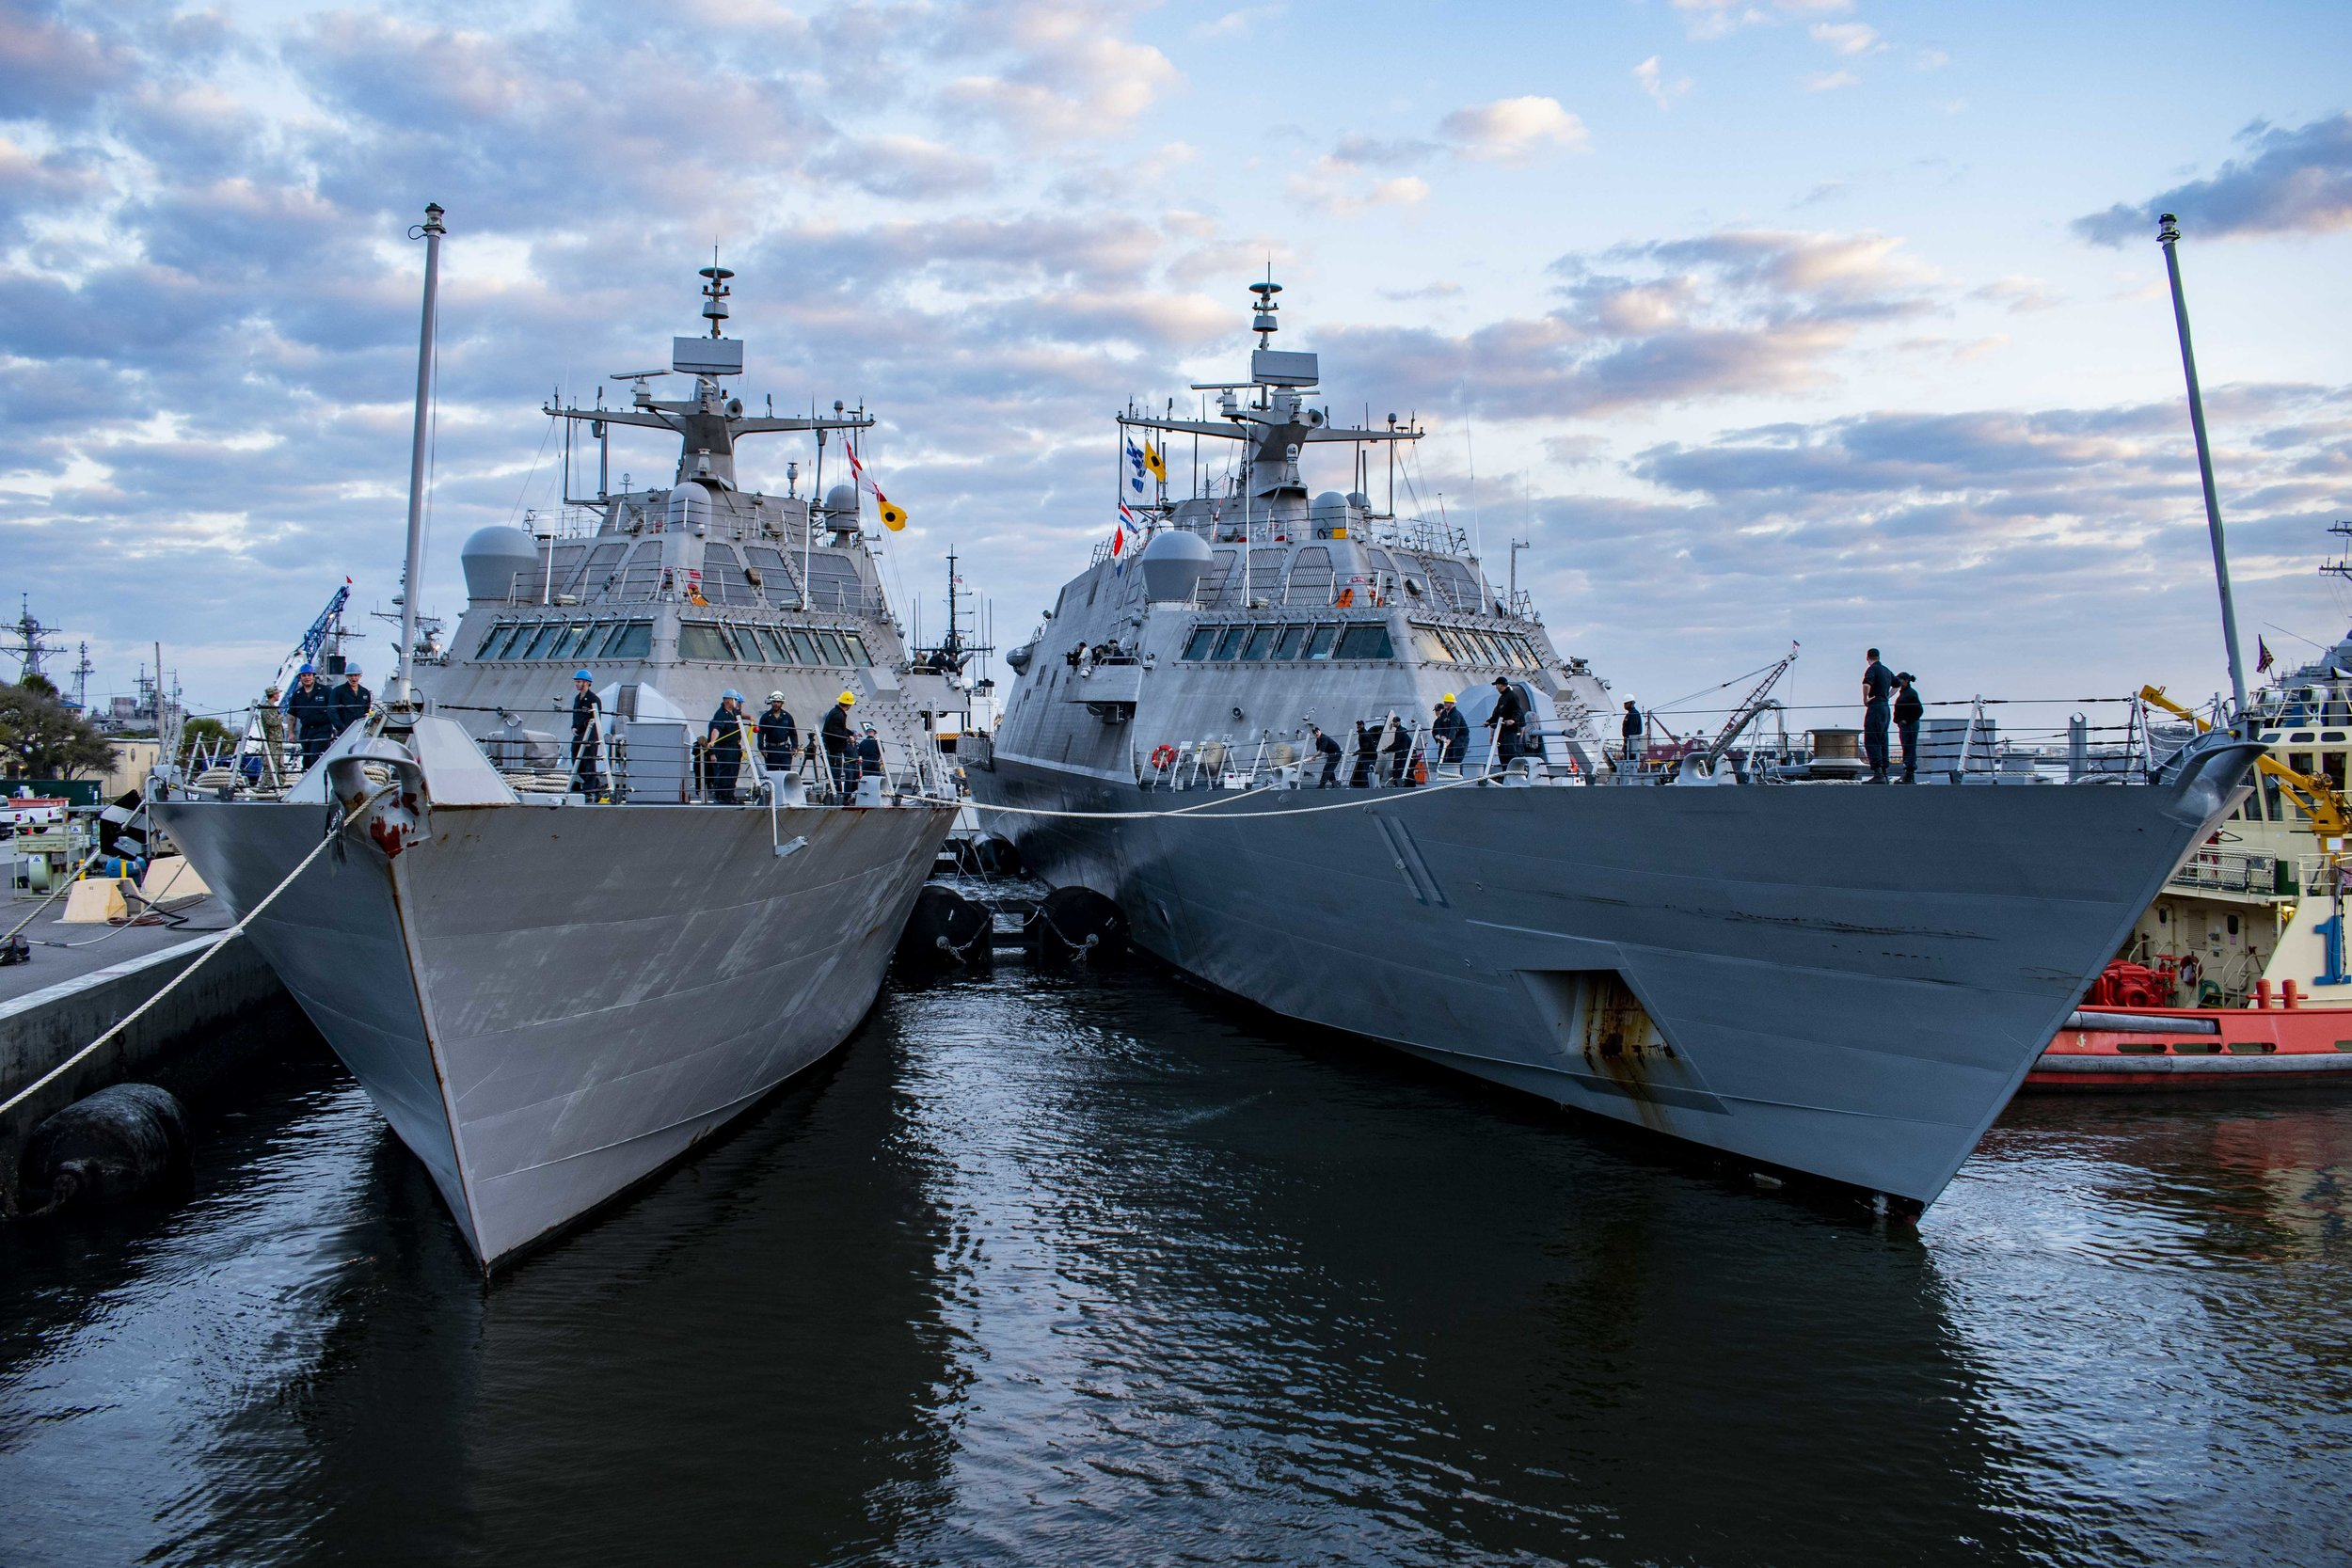 Freedom-class littoral combat ships USS Sioux City (LCS-11) and USS Milwaukee (LCS-5) moor alongside one another during a nesting evolution on Naval Station Mayport, Fla. on March 25, 2019. US Navy Photo